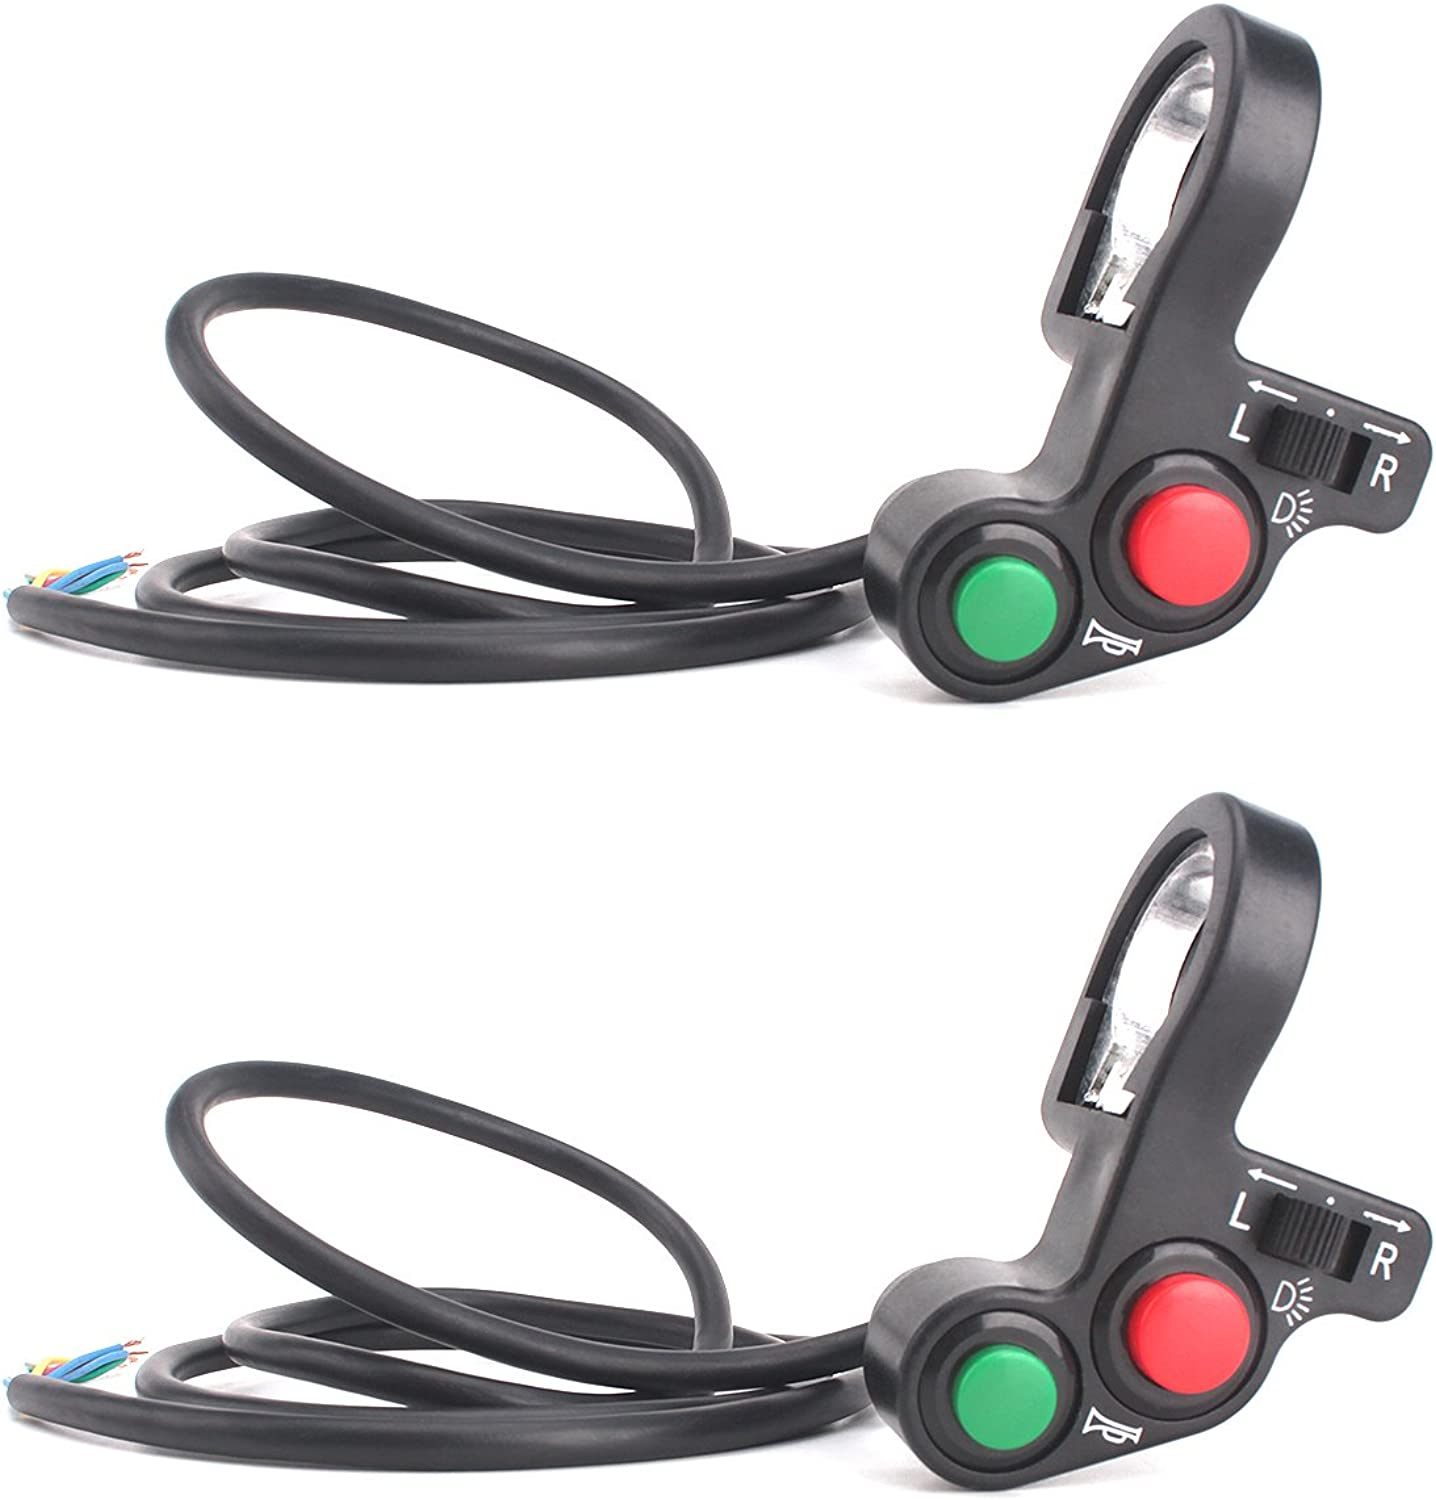 Zramo 2 Pack Handlebar MultiFunction Motorcycle Offroad Horn Turn Signal On Off Light Switch